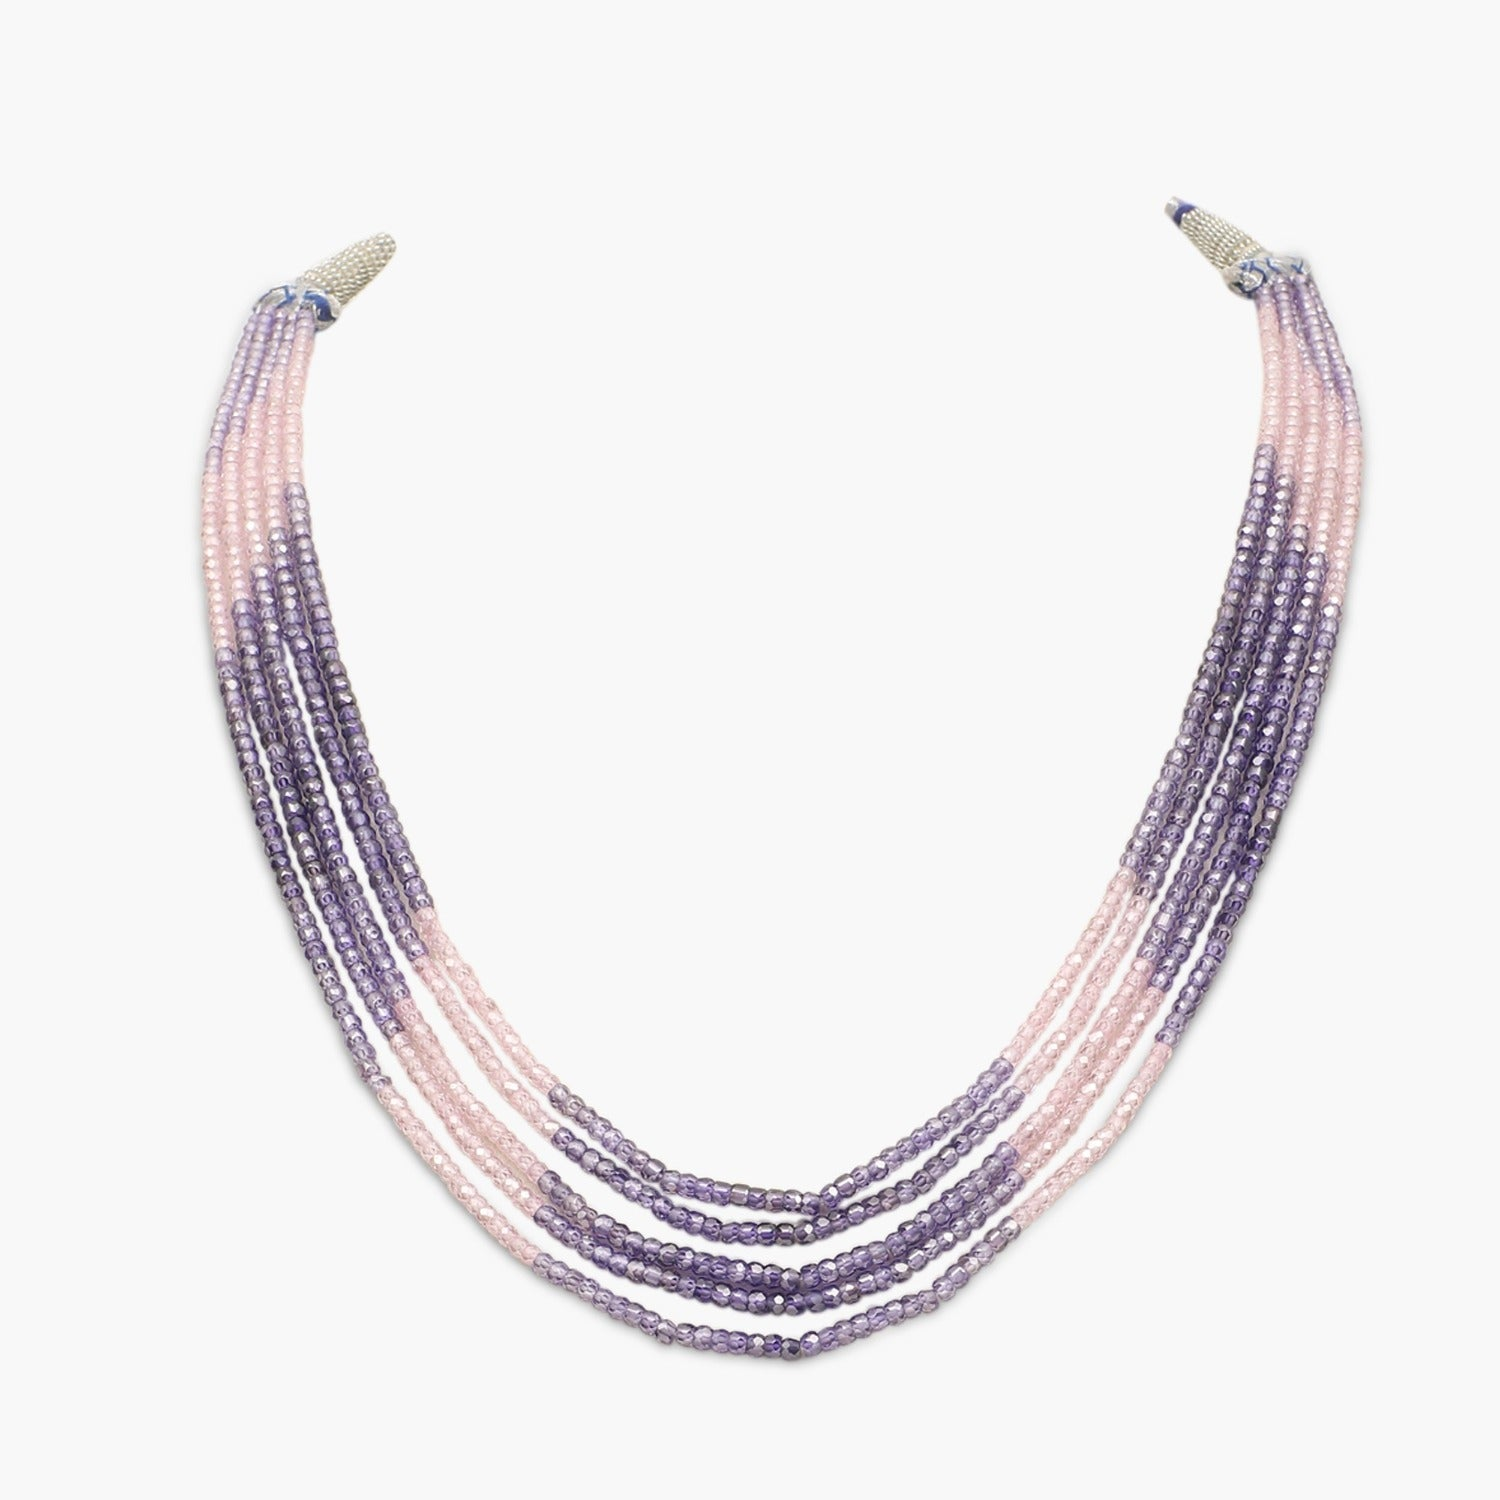 Pink and Purple shaded Faceted Cubic Zirconia Beads Necklace